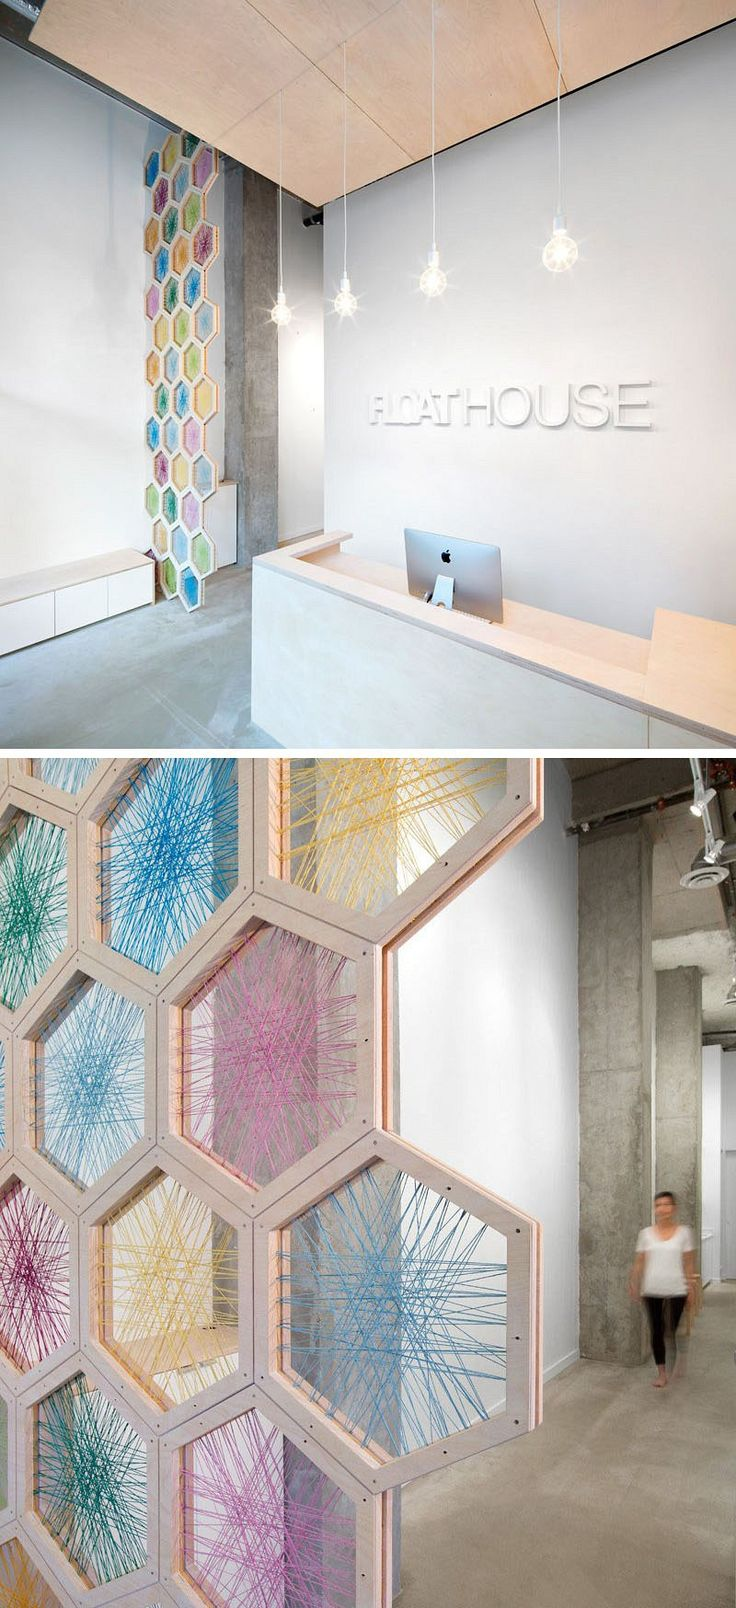 ideas classy hom enterwood flooring gray vinyl. 19 Ideas For Using Hexagons In Interior Design And Architecture // A 17 Foot Tall Screen Made From Birchwood Woven With Colorful Twine Greets You Classy Hom Enterwood Flooring Gray Vinyl O